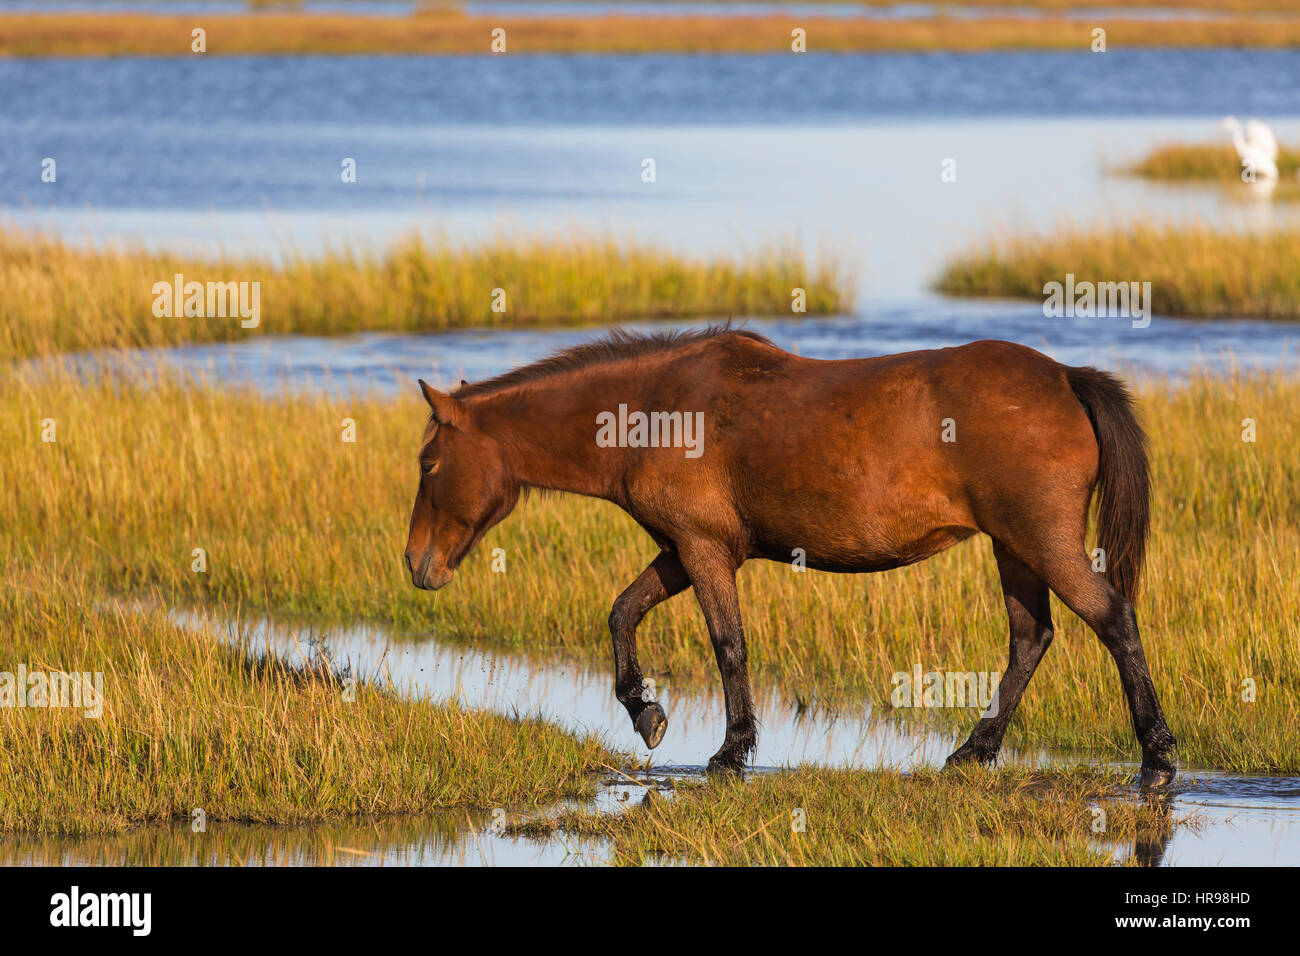 Assateague Pony (Equus caballus) looking for food in a marsh in Assateague Island National Seashore - Stock Image